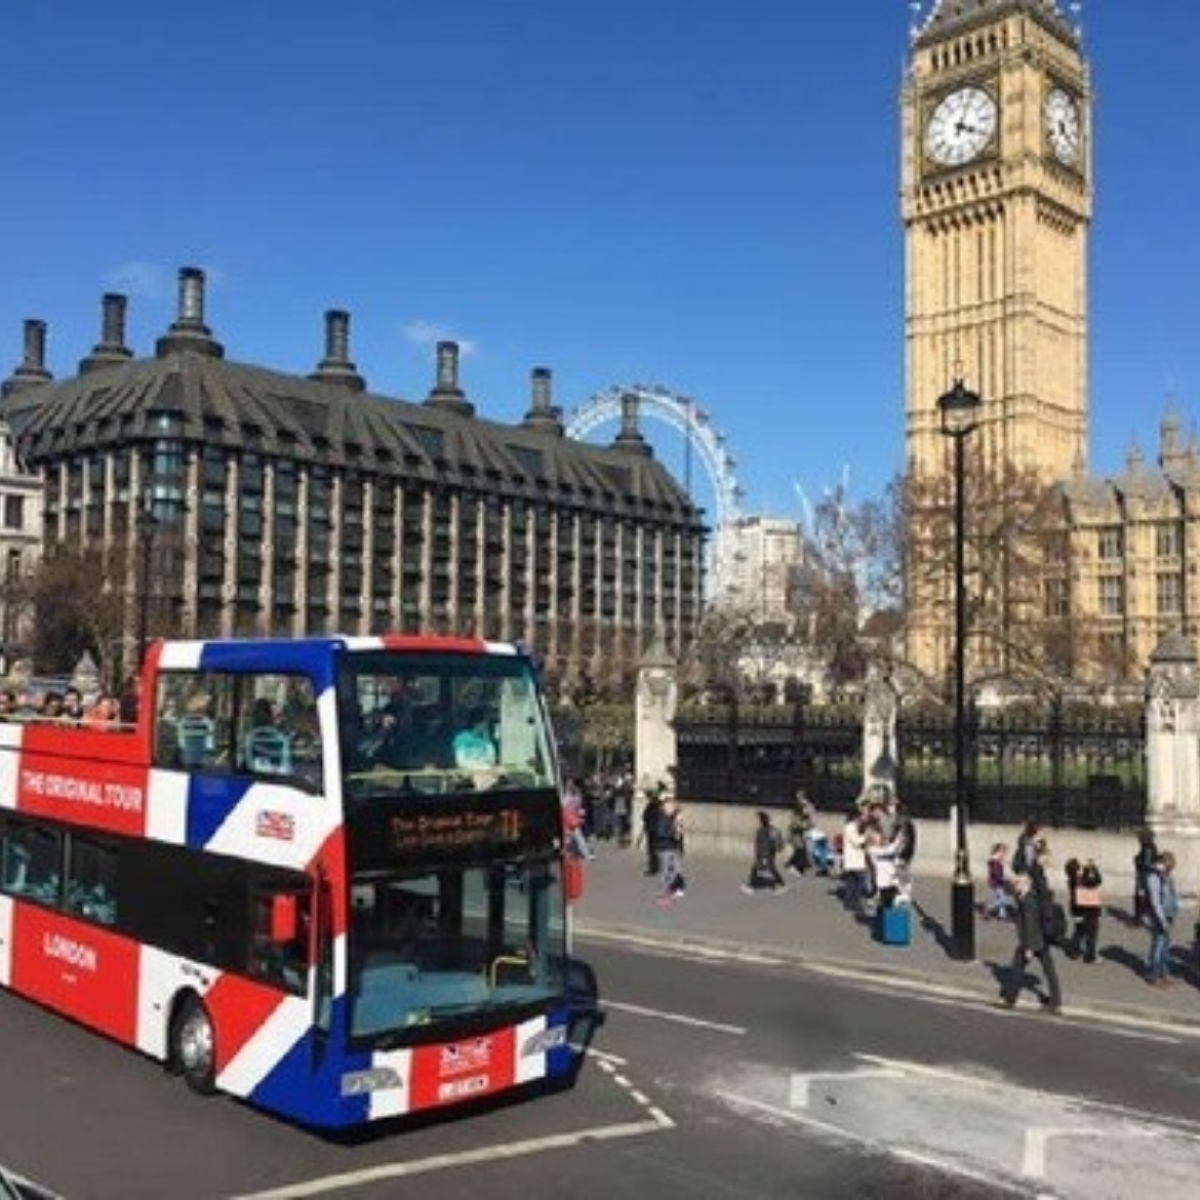 The Original London Sightseeing Tour (24hr) Images